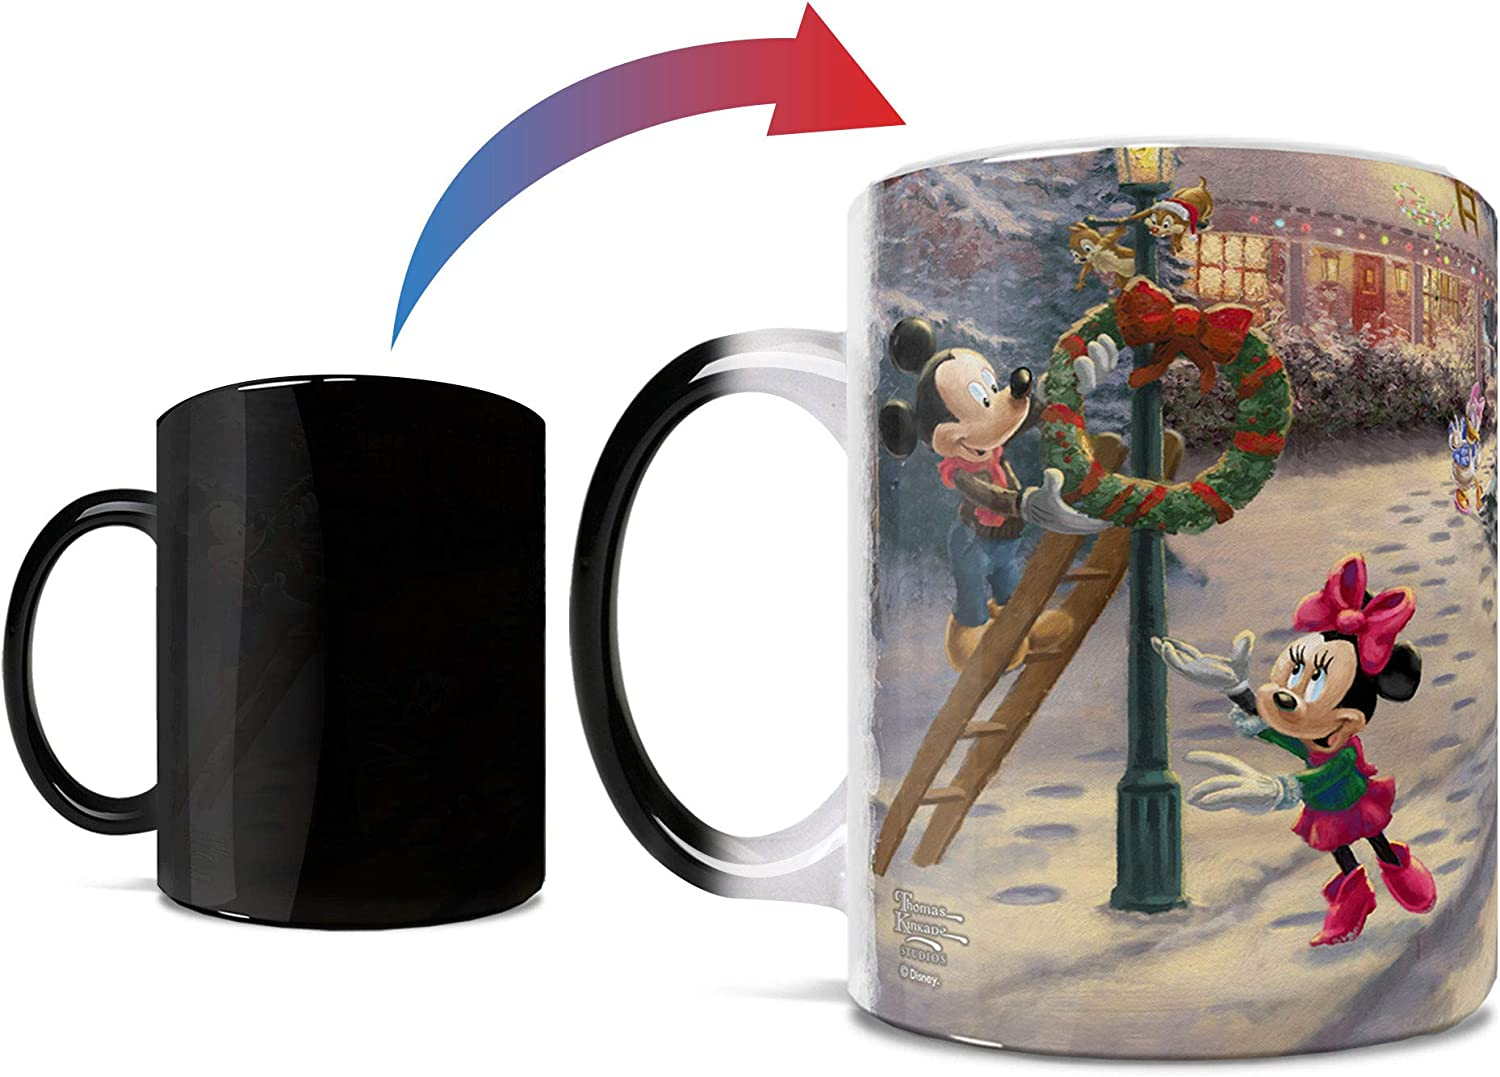 Disney – Mickey Mouse – Minnie Mouse – Victorian Christmas – Thomas Kinkade - One 11 oz Morphing Mugs Color Changing Heat Sensitive Ceramic Mug – Image Revealed When HOT Liquid Is Added!